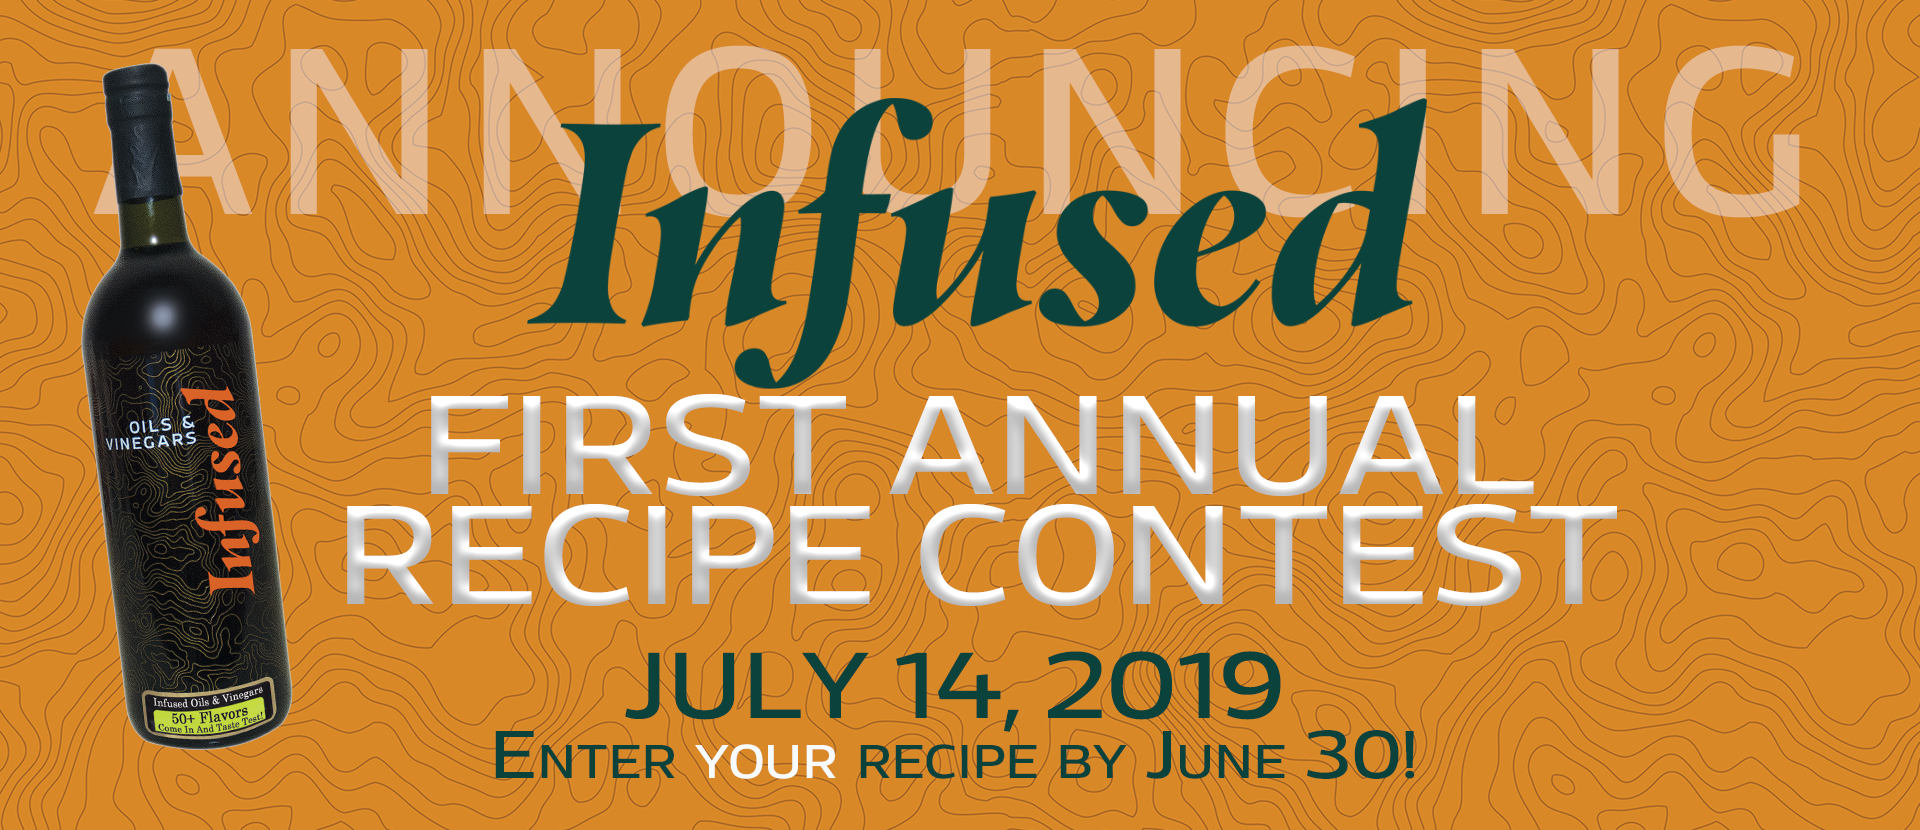 Recipe Contest -- July 14, 2019 -- Enter your recipe until June 30!